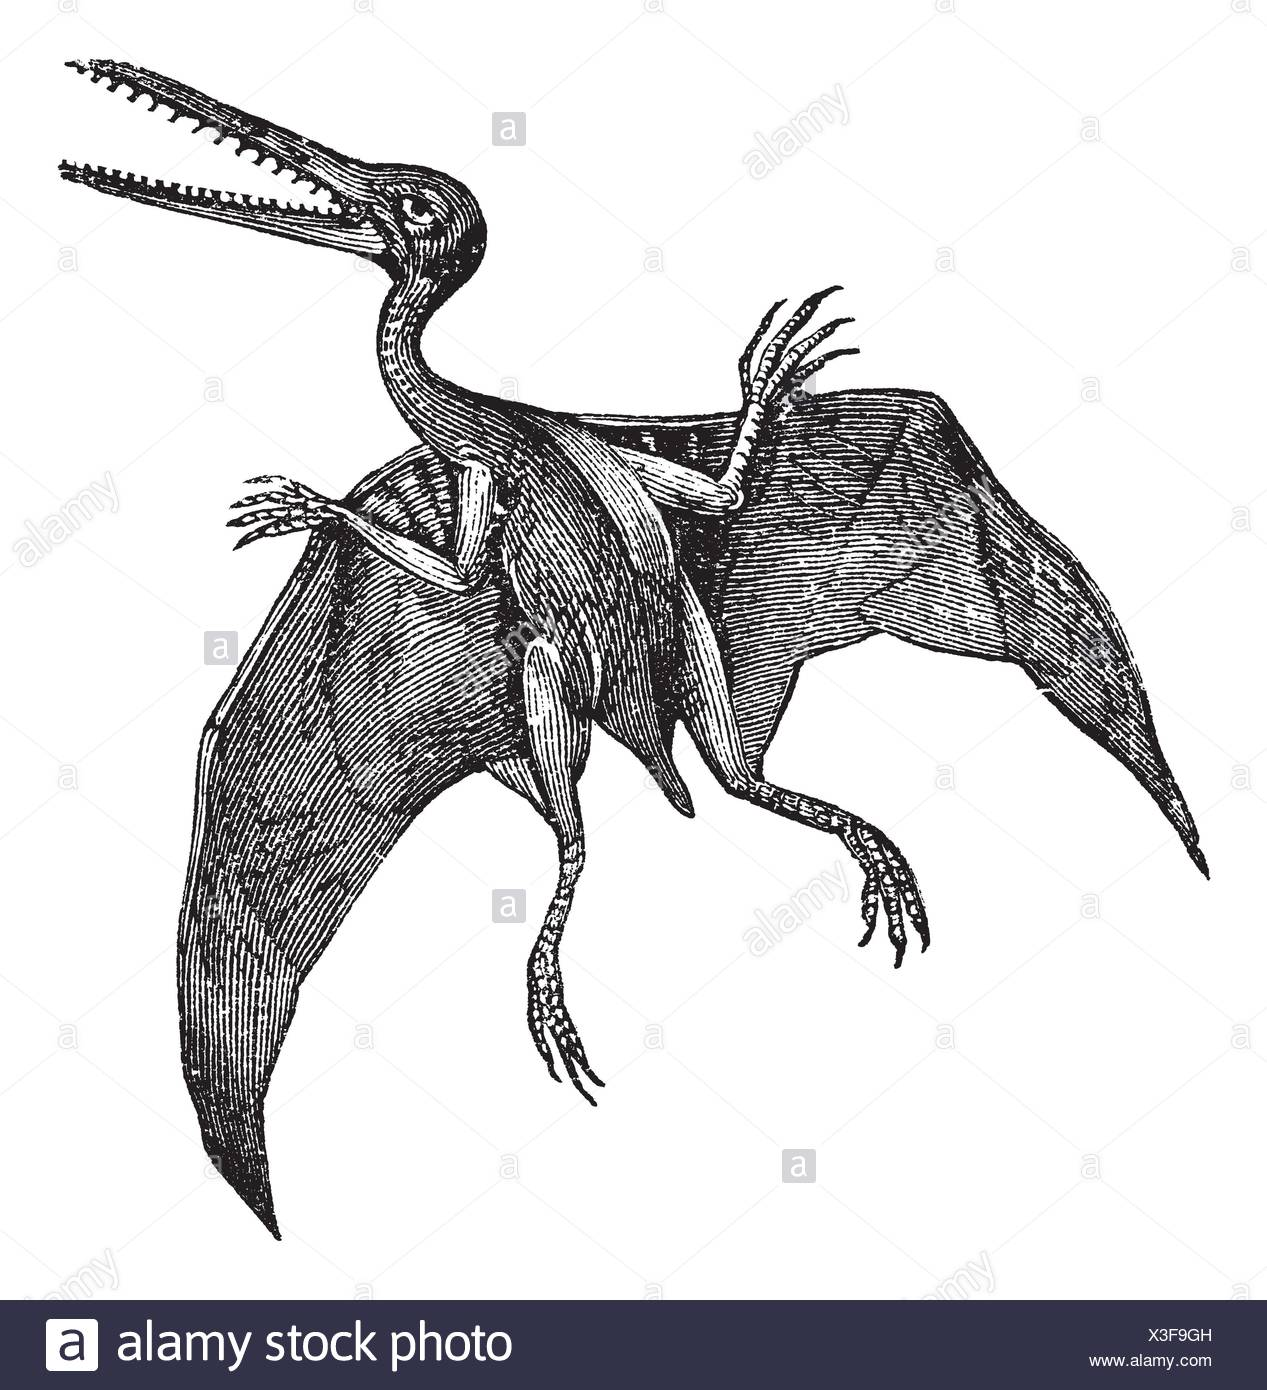 Pterodactylus or Pterodactylus antiquus, vintage engraving  Old engraved illustration of Pterodactylus isolated on a white background - Stock Image